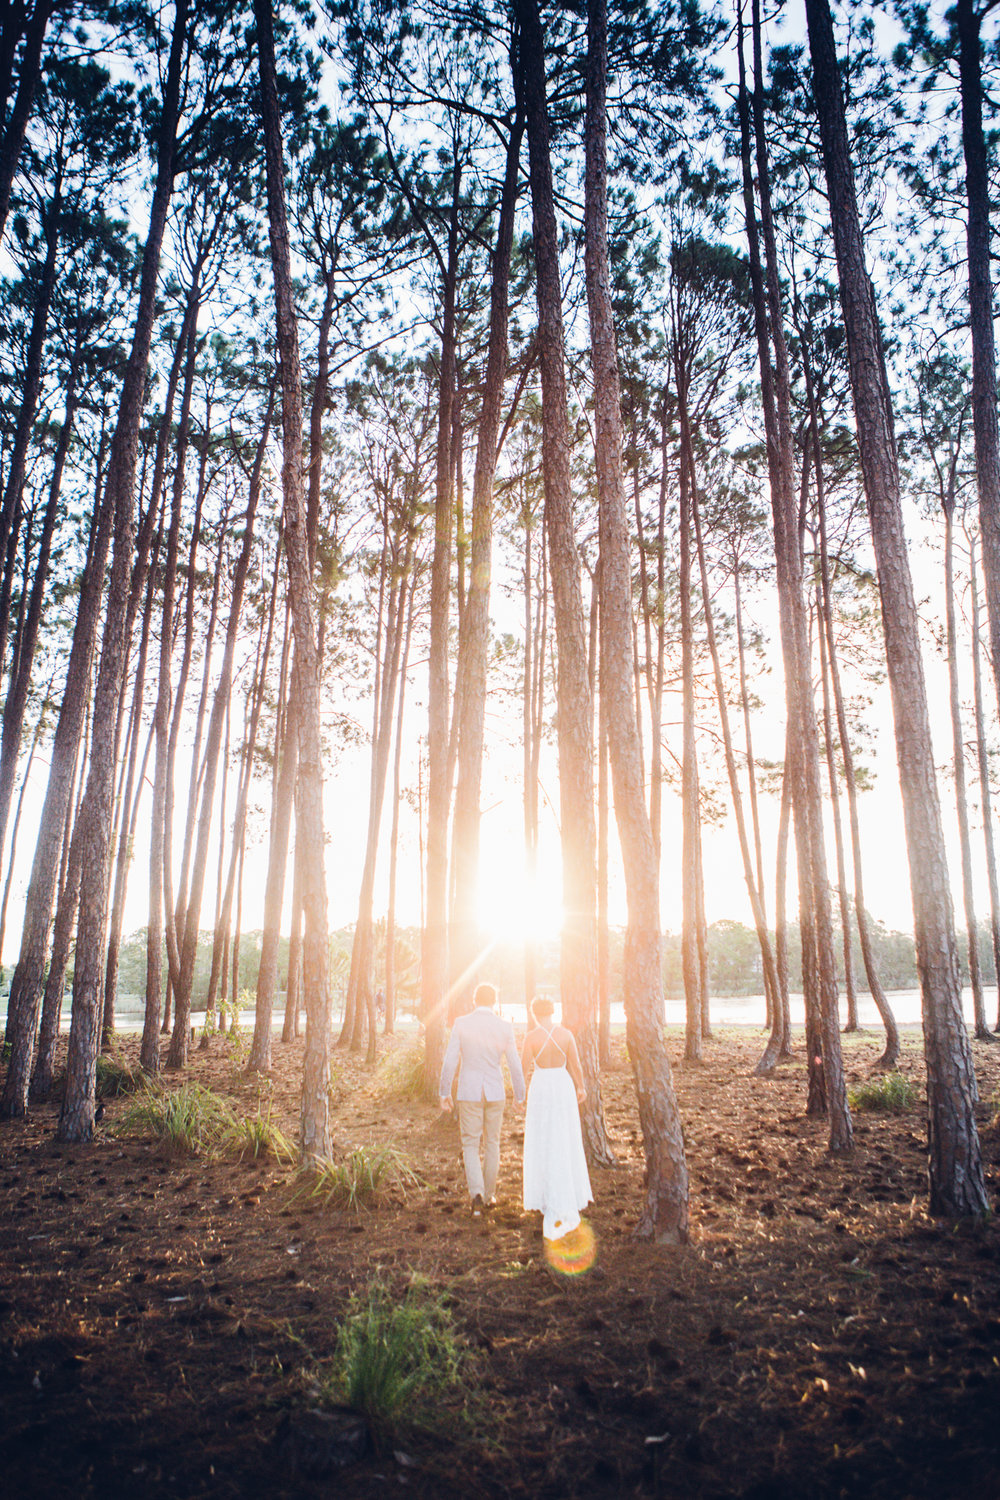 Danny & Karleigh by Get Together Photography small 273.jpg